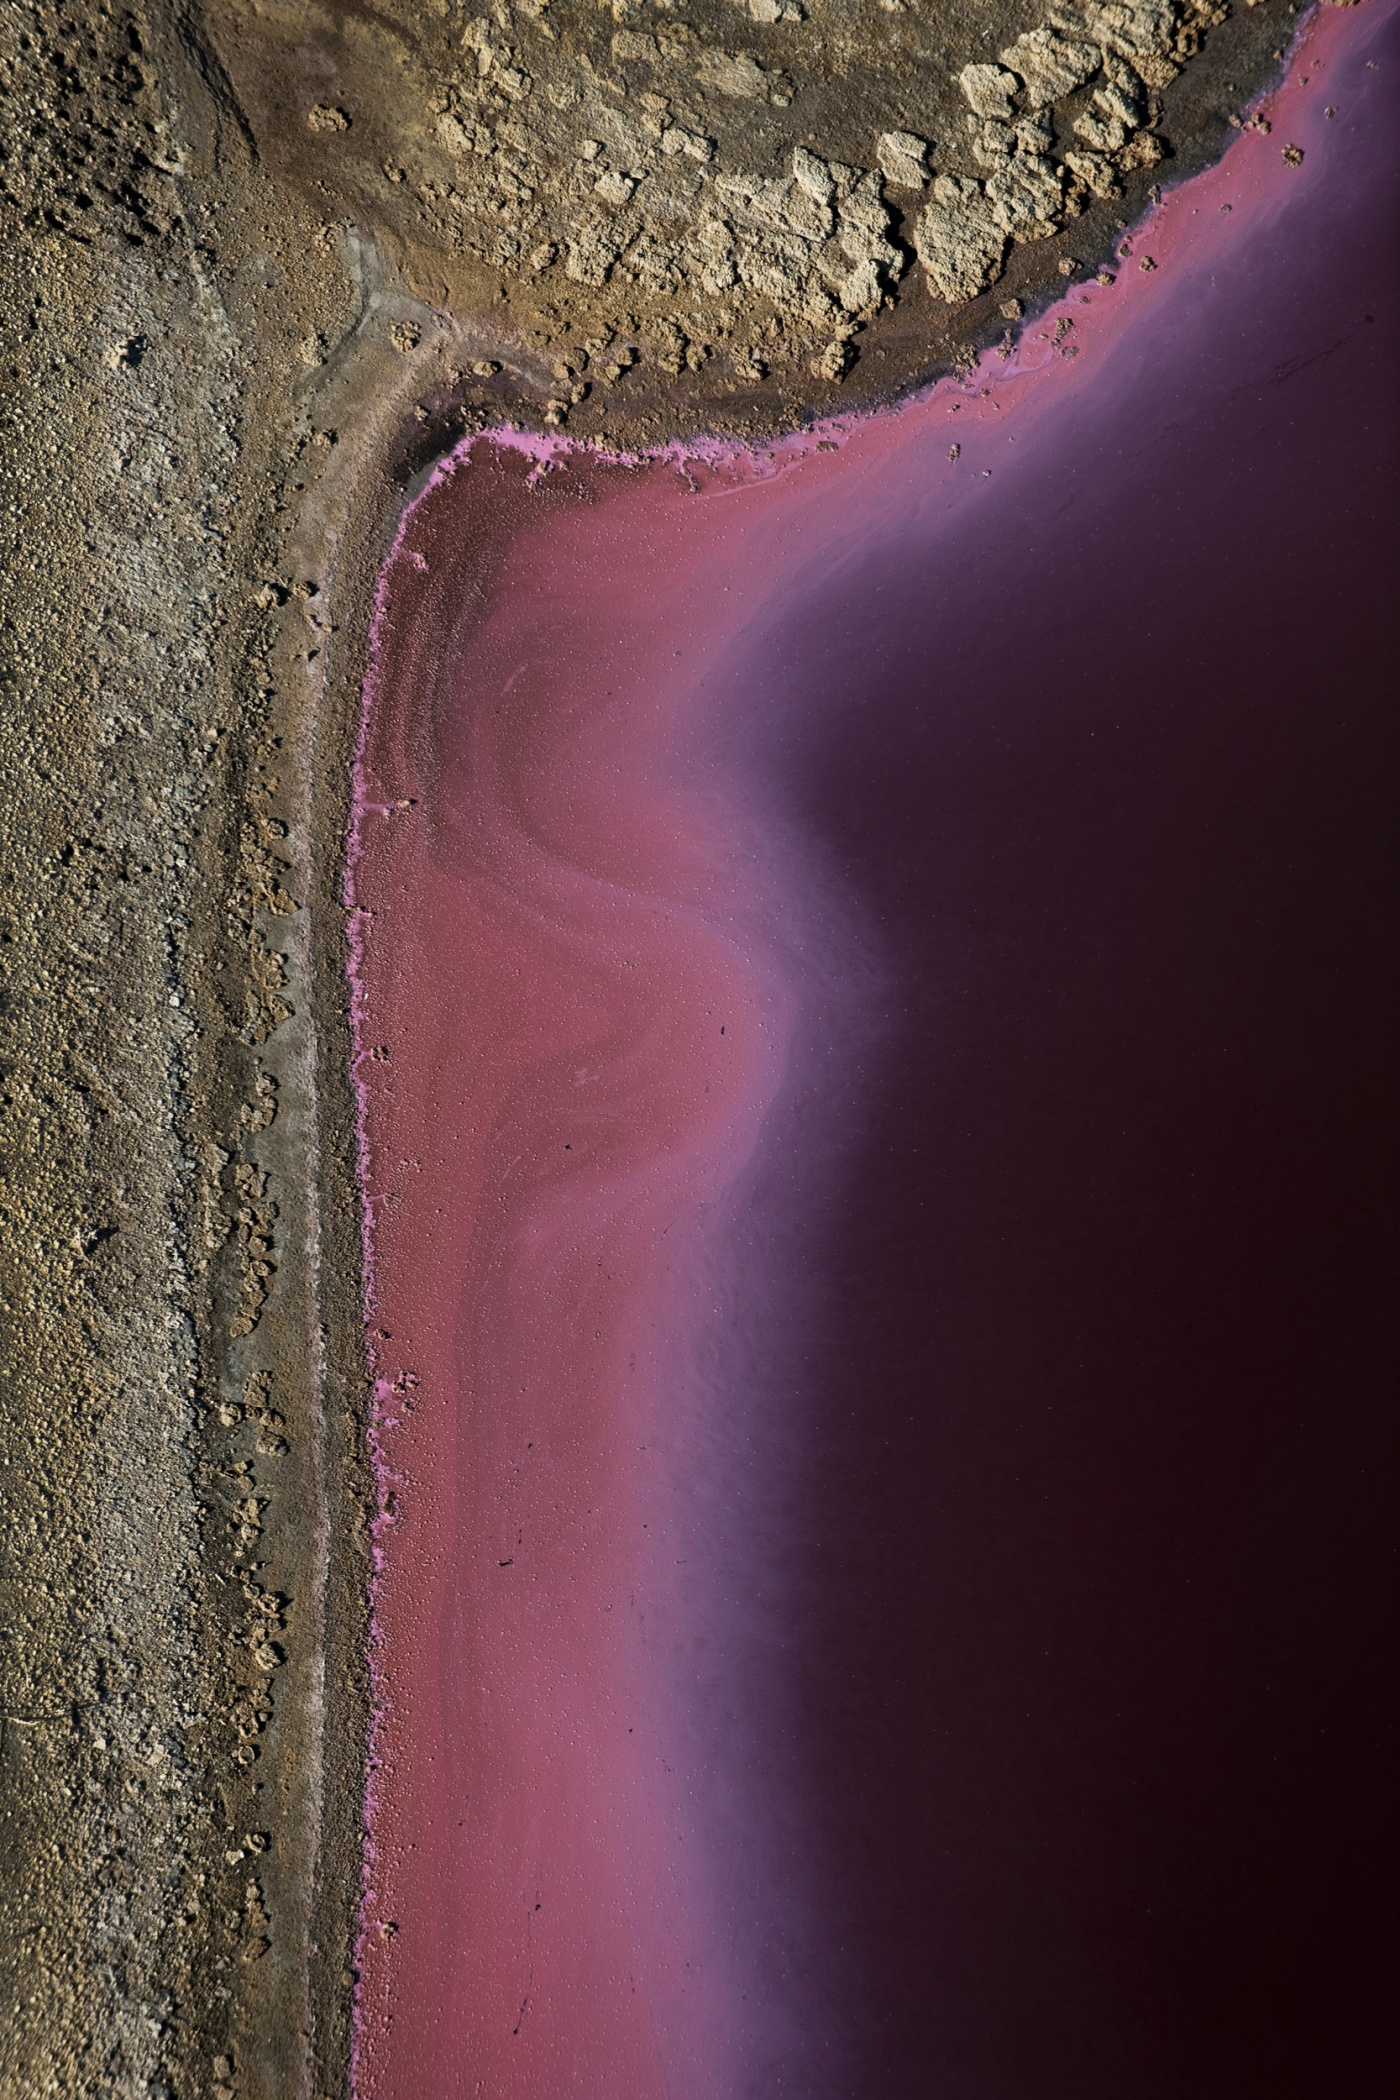 Seno - Prints 1. Aerial nature - Hector Garrido, Aerial and human photography